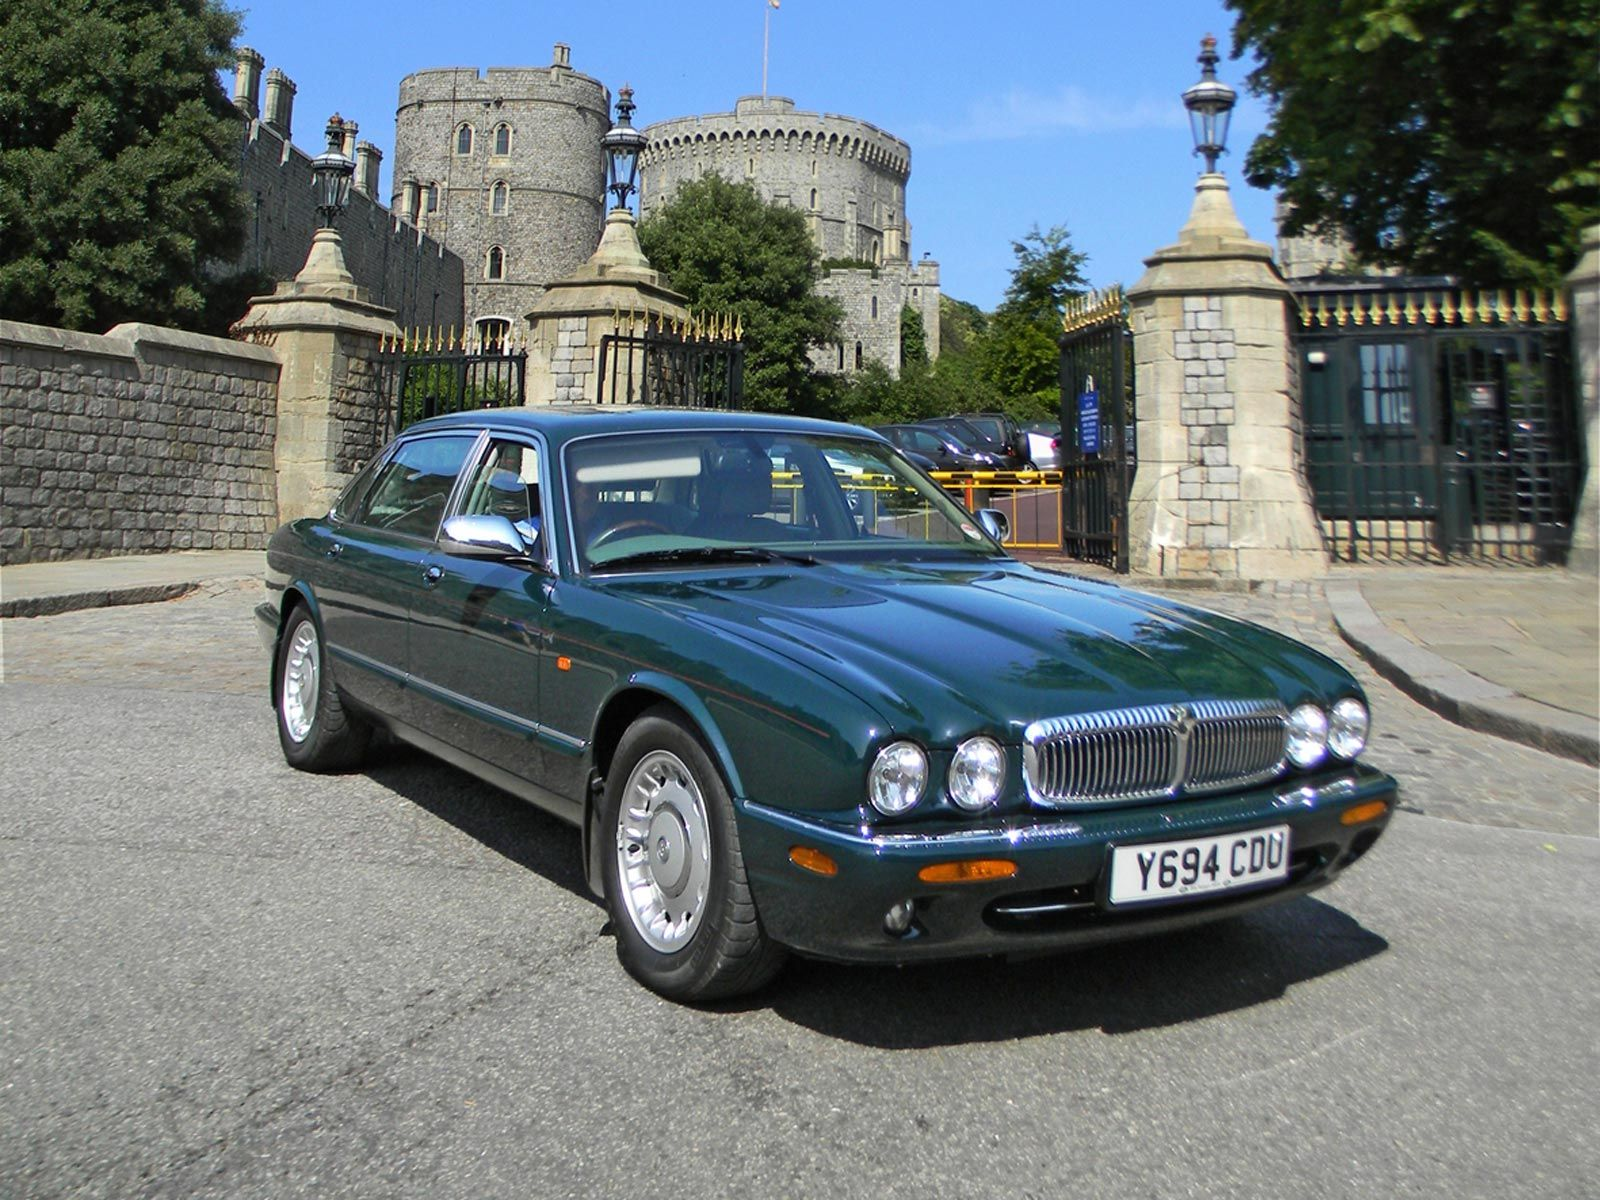 Fancy a Jag? Fancy a Jag that was owned by a Celeb?Then this car does not come with a better pedigree..The Queen's Daimler Super V8 for sale at auction......motormouthuk.com